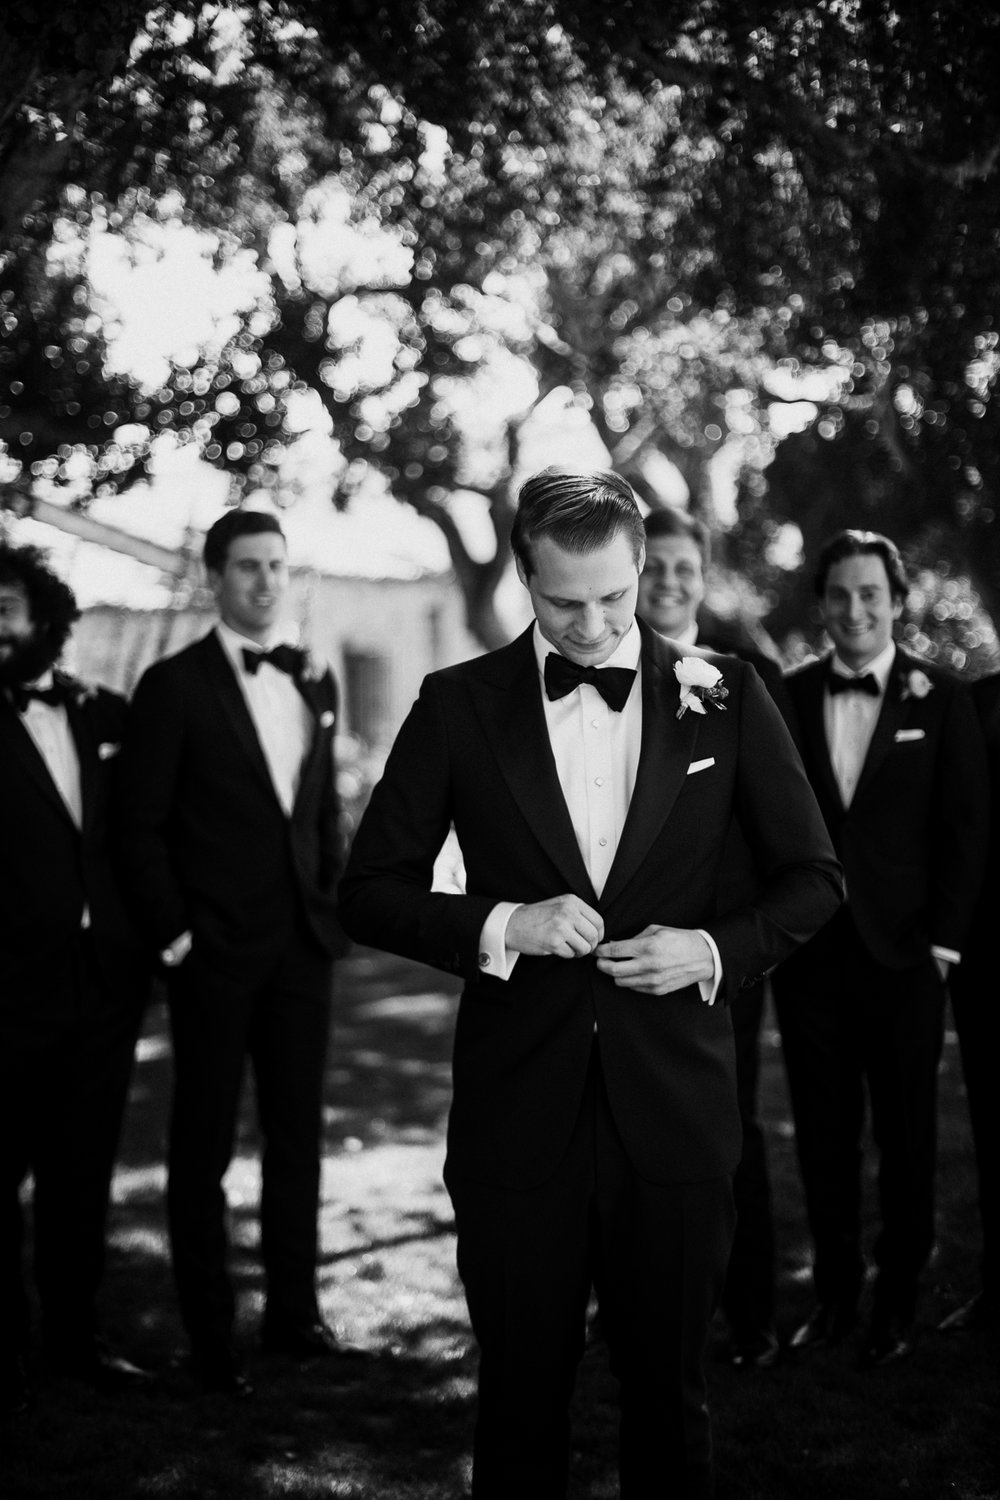 Archer Inspired Photography Carmel California Wedding Lifestyle Documentary Photographer Bride and Groom-14.jpg